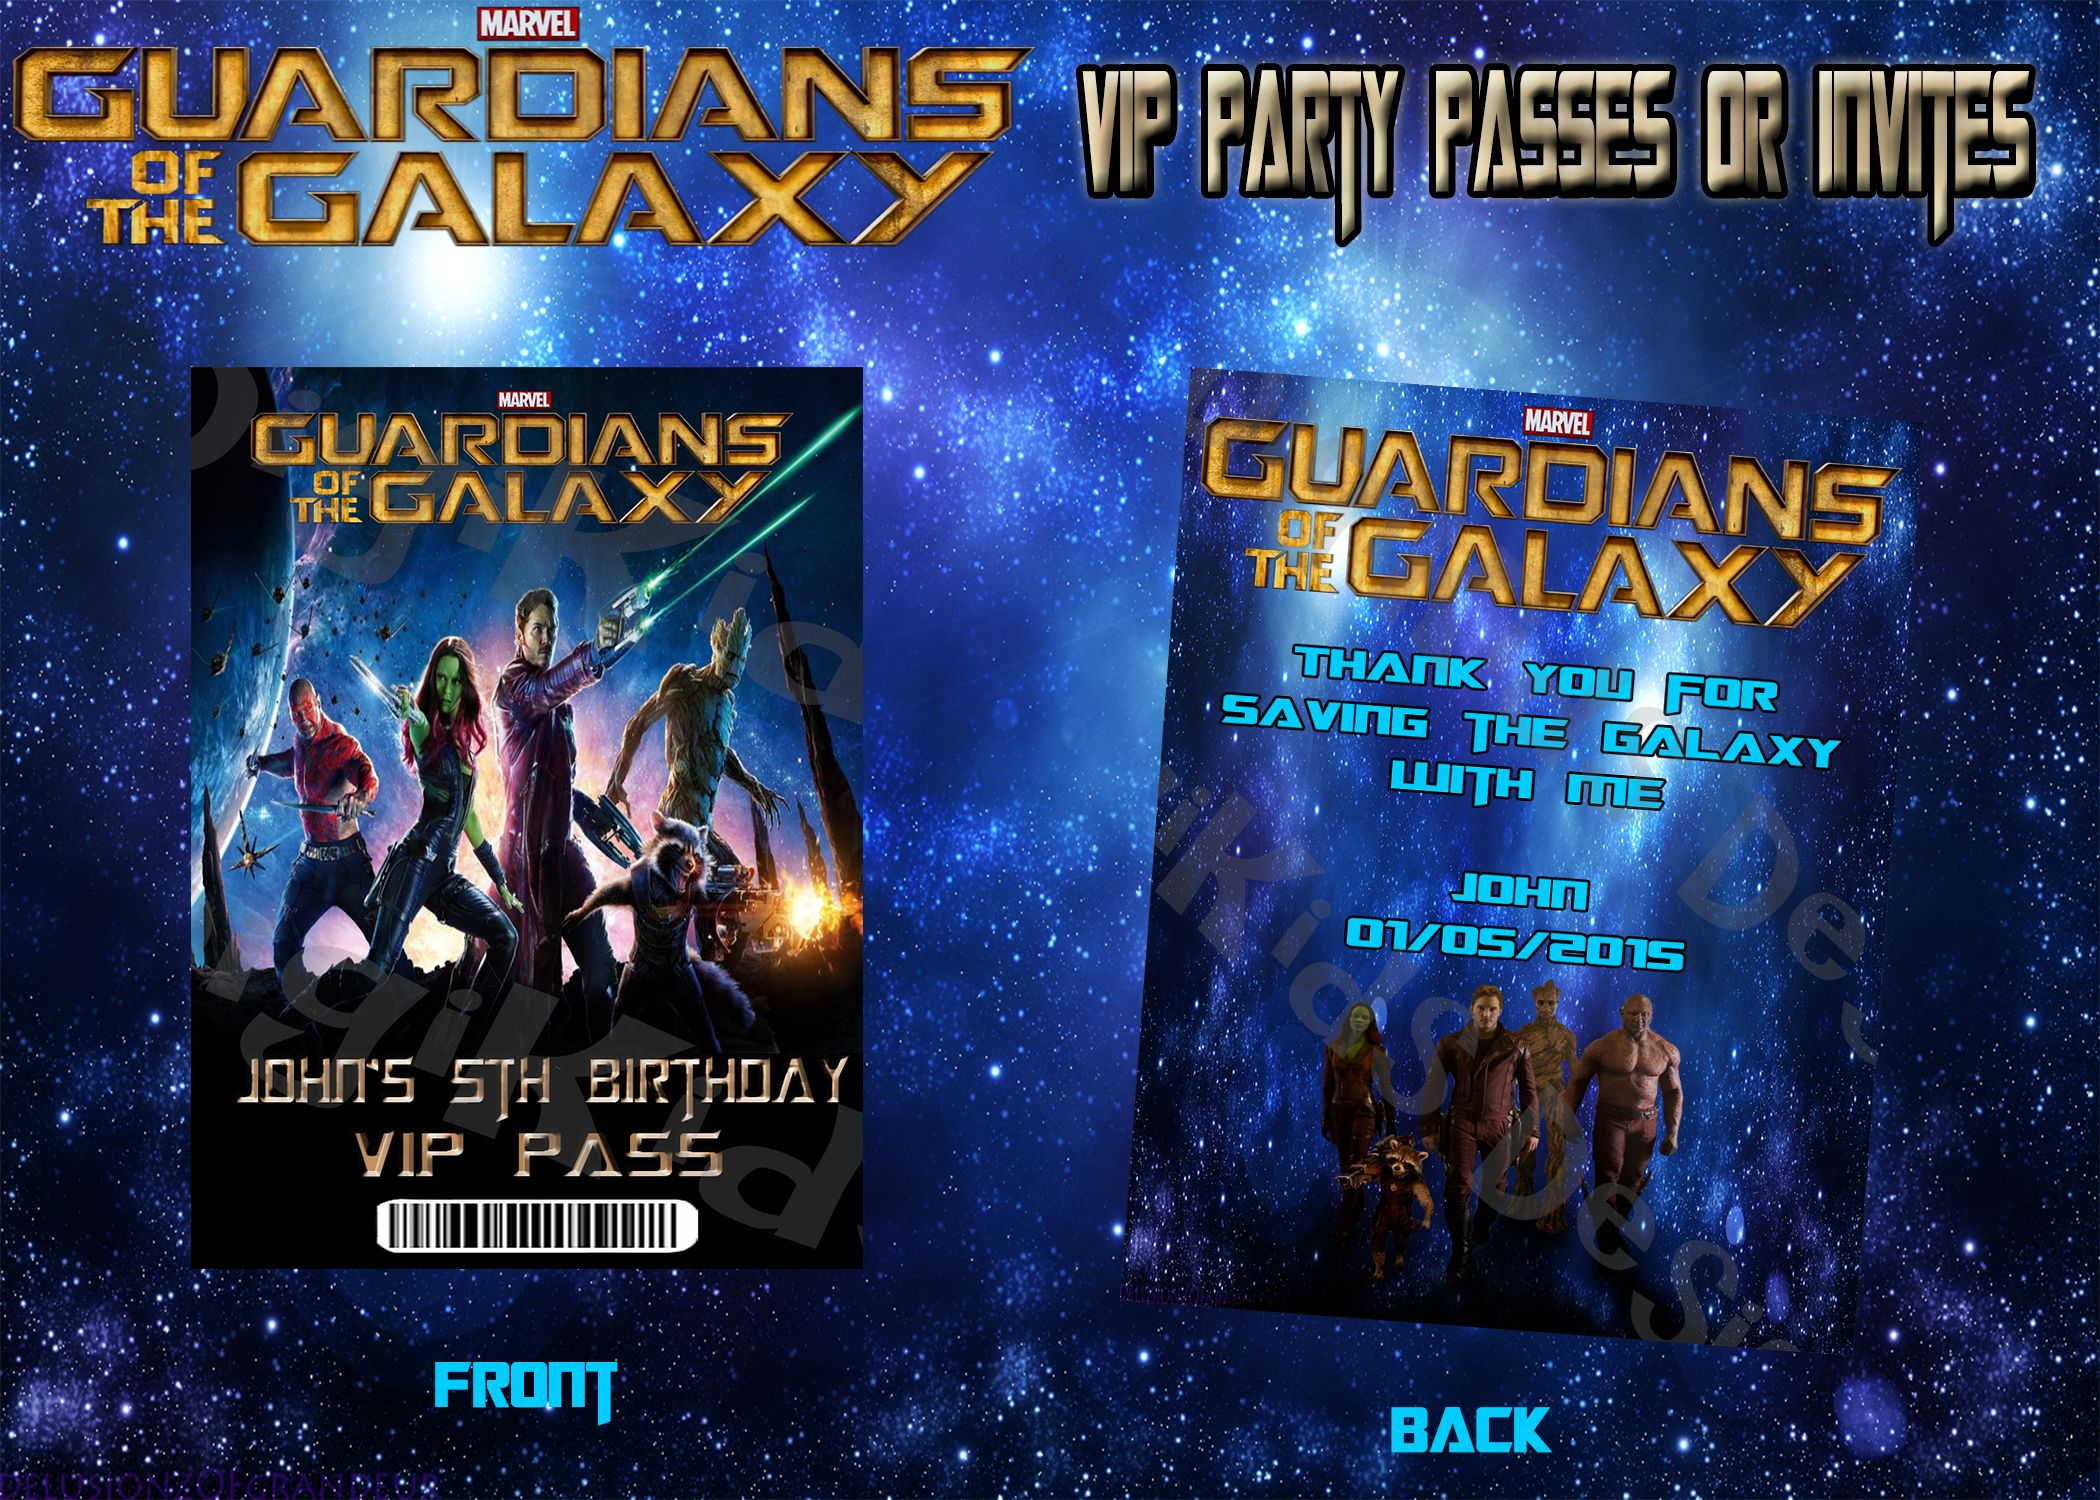 Guardians of the Galaxy Personalized Birthday Party VIP Pass and